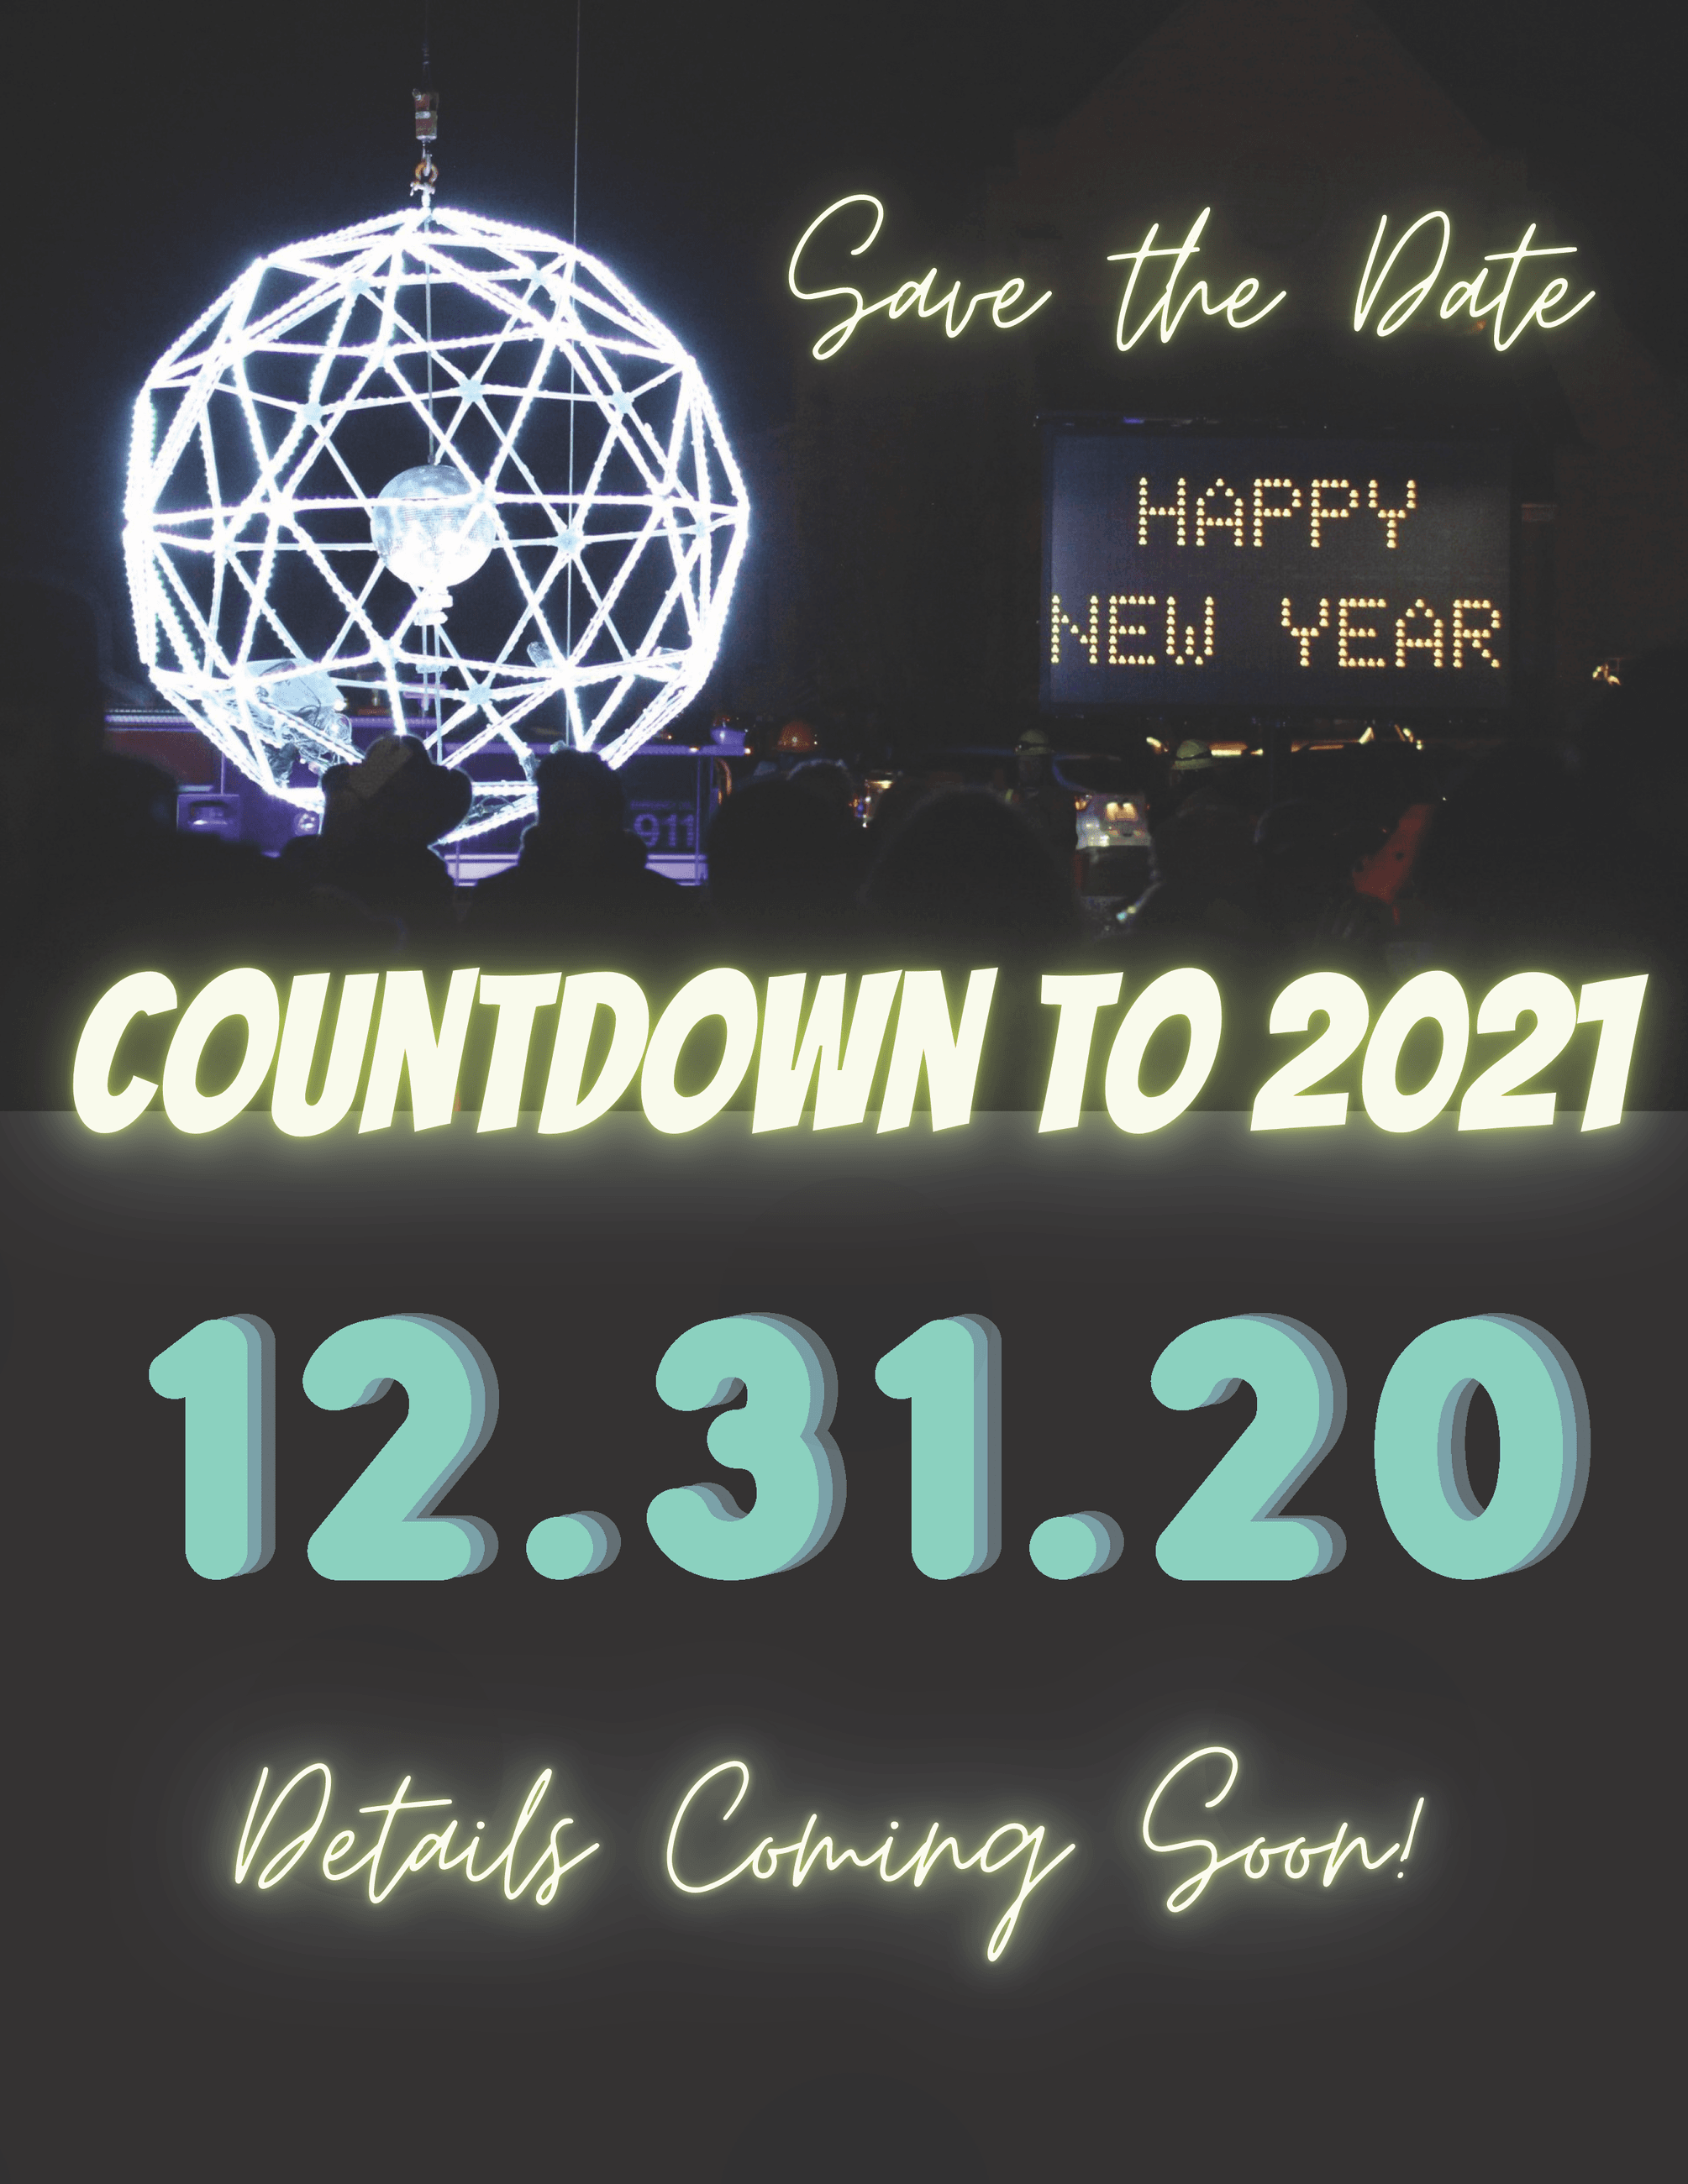 New Year's Eve: Countdown to 2021 | Fredericksburg, TX - Official Website